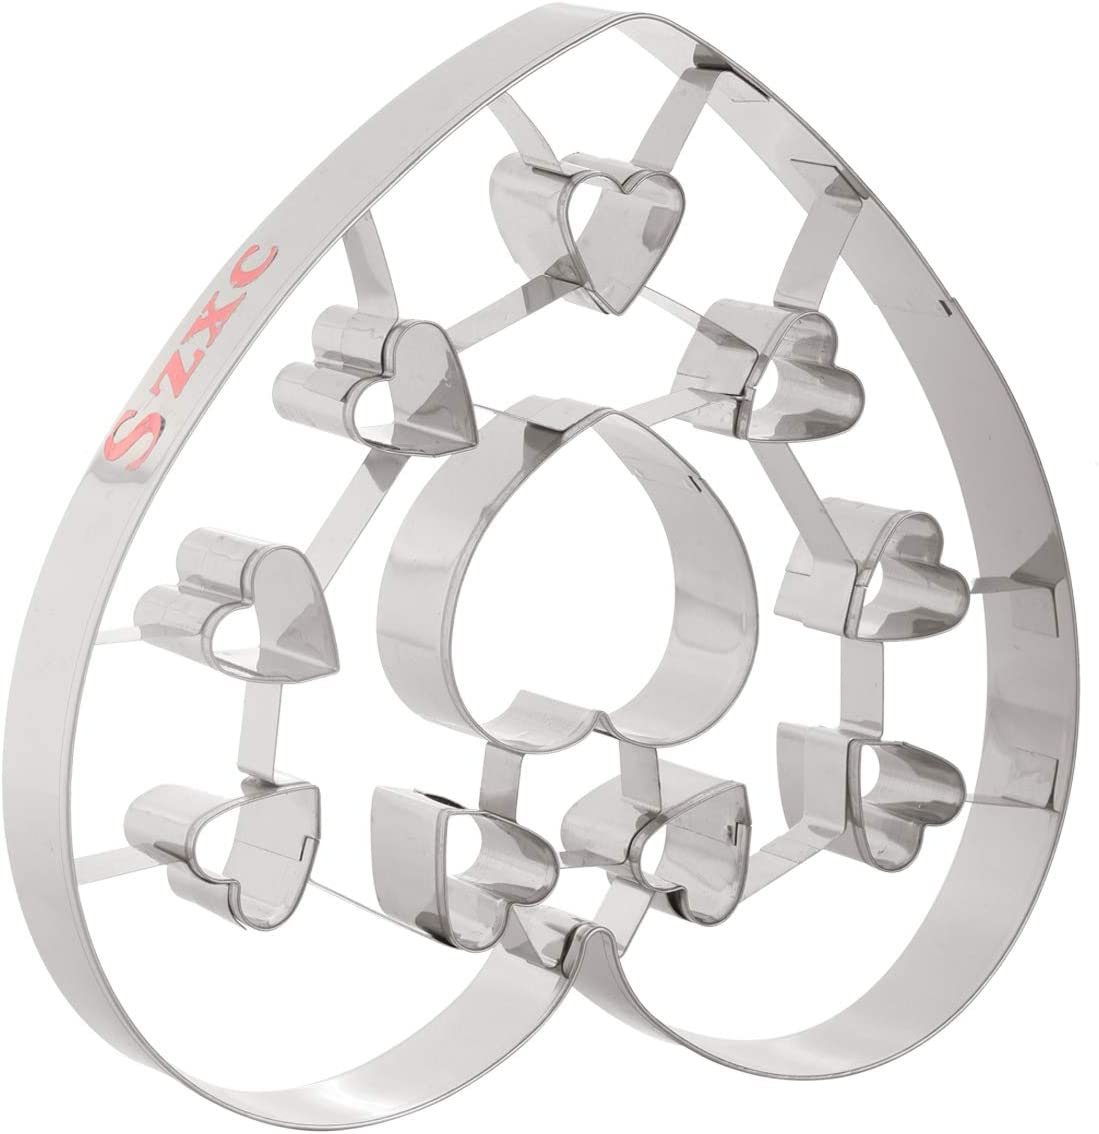 Szxc Large Heart Cookie Cutters - Stainless Steel - BPA Free - Dishwasher Safe - 7 x 7-1/2 Inch